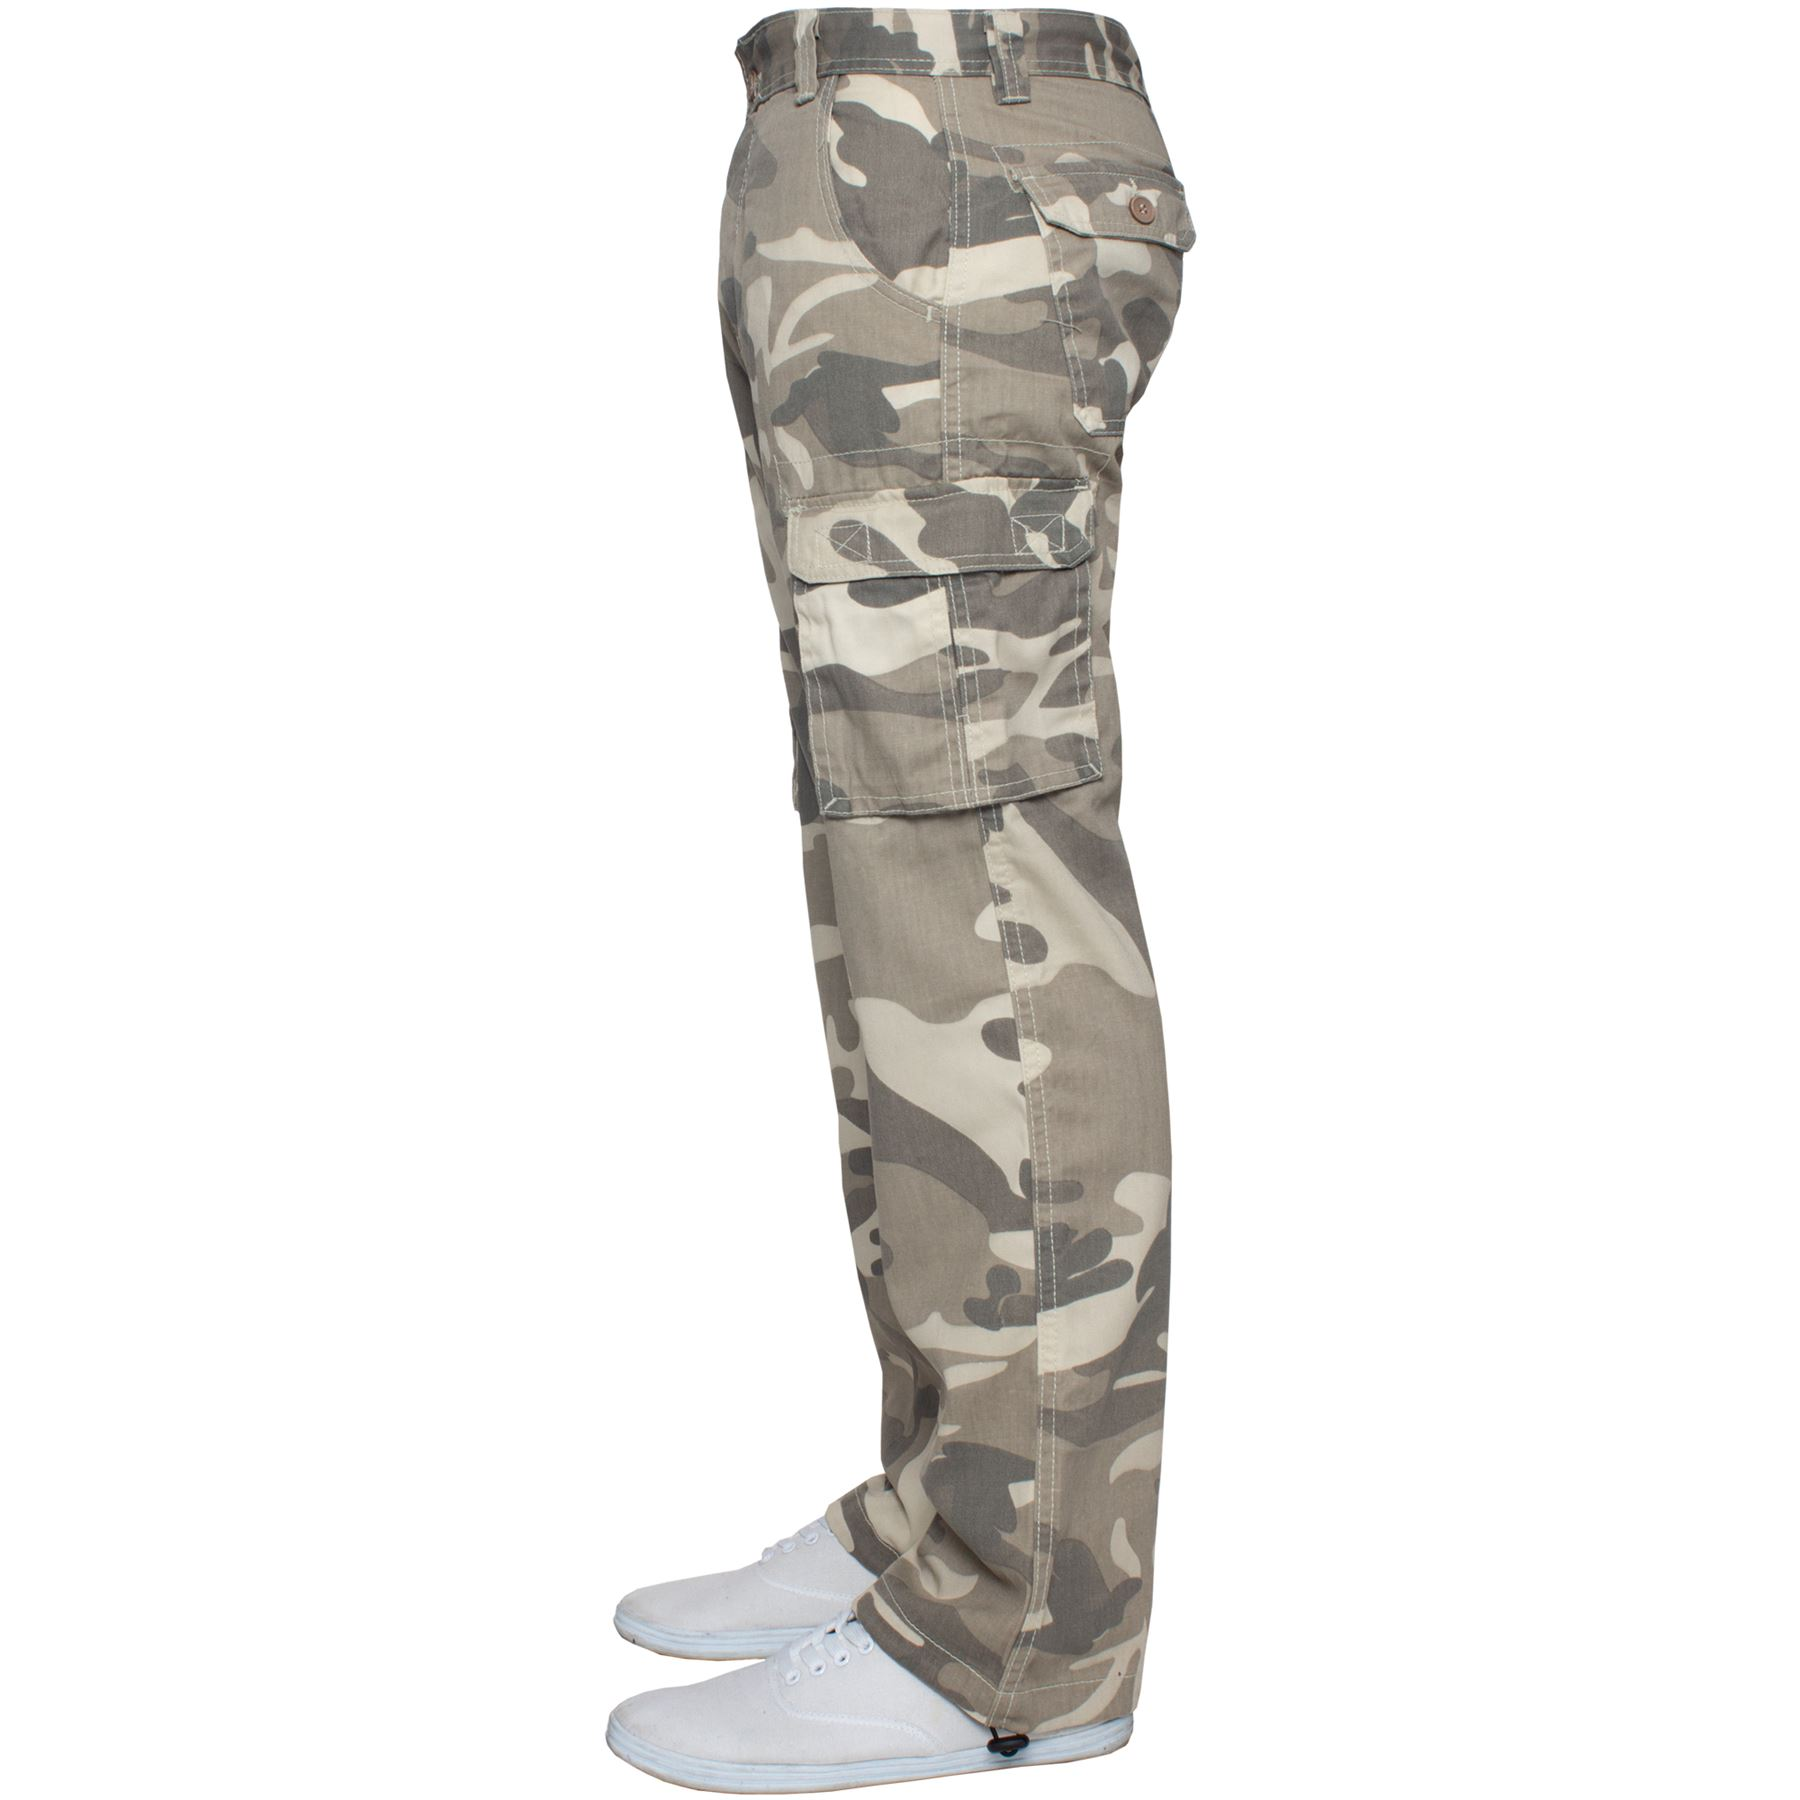 Kruze-Mens-Military-Combat-Trousers-Camouflage-Cargo-Camo-Army-Casual-Work-Pants thumbnail 5